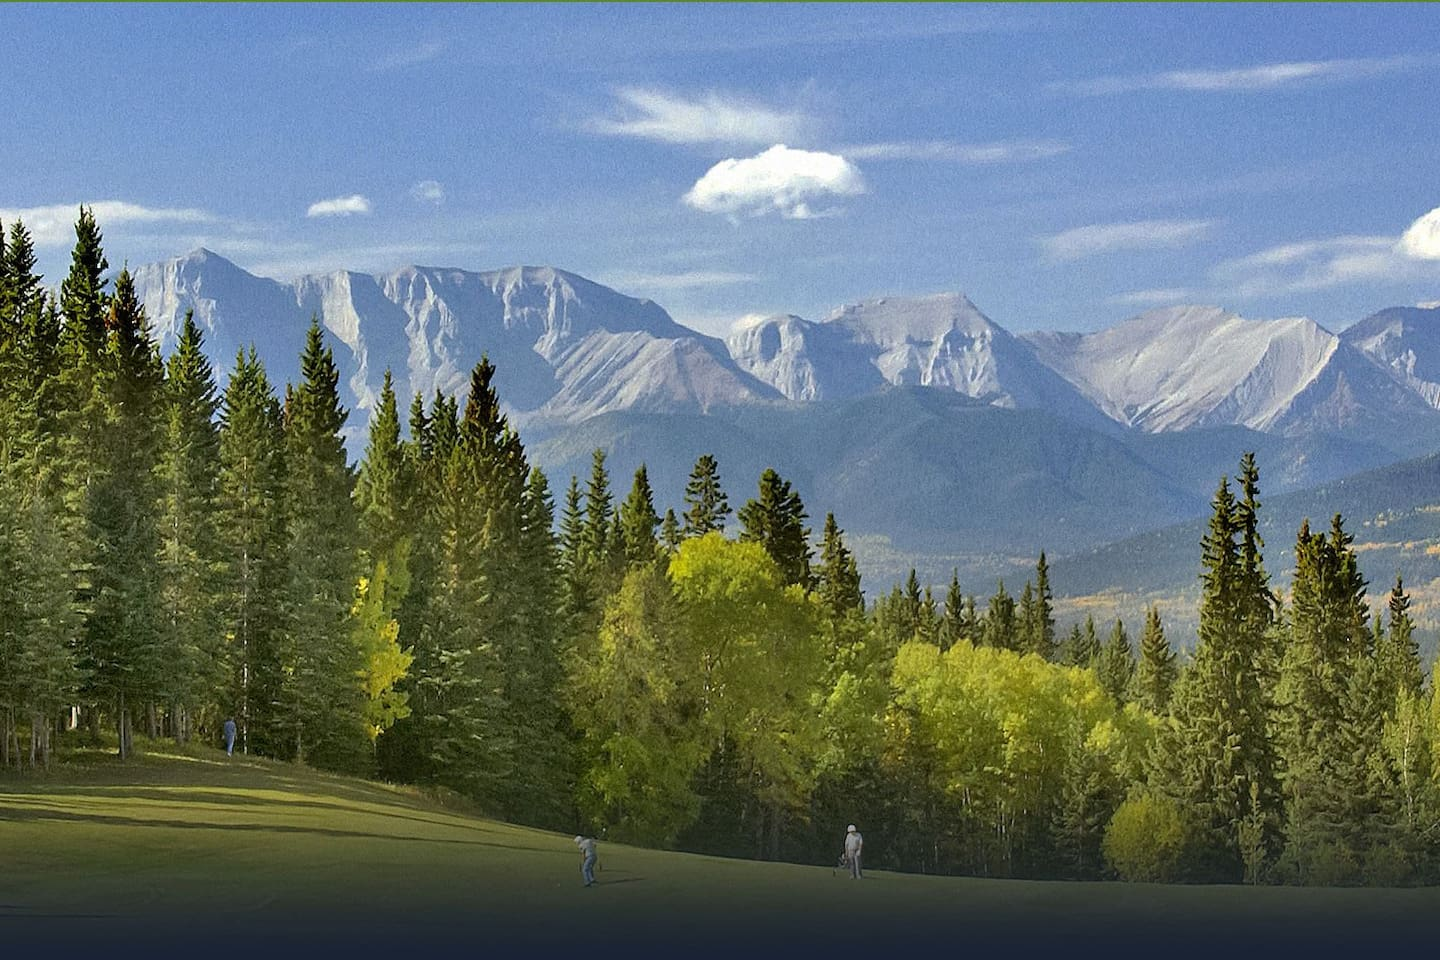 Hinton is situated in the foothills of the Rocky Mountains near Jasper National Park.